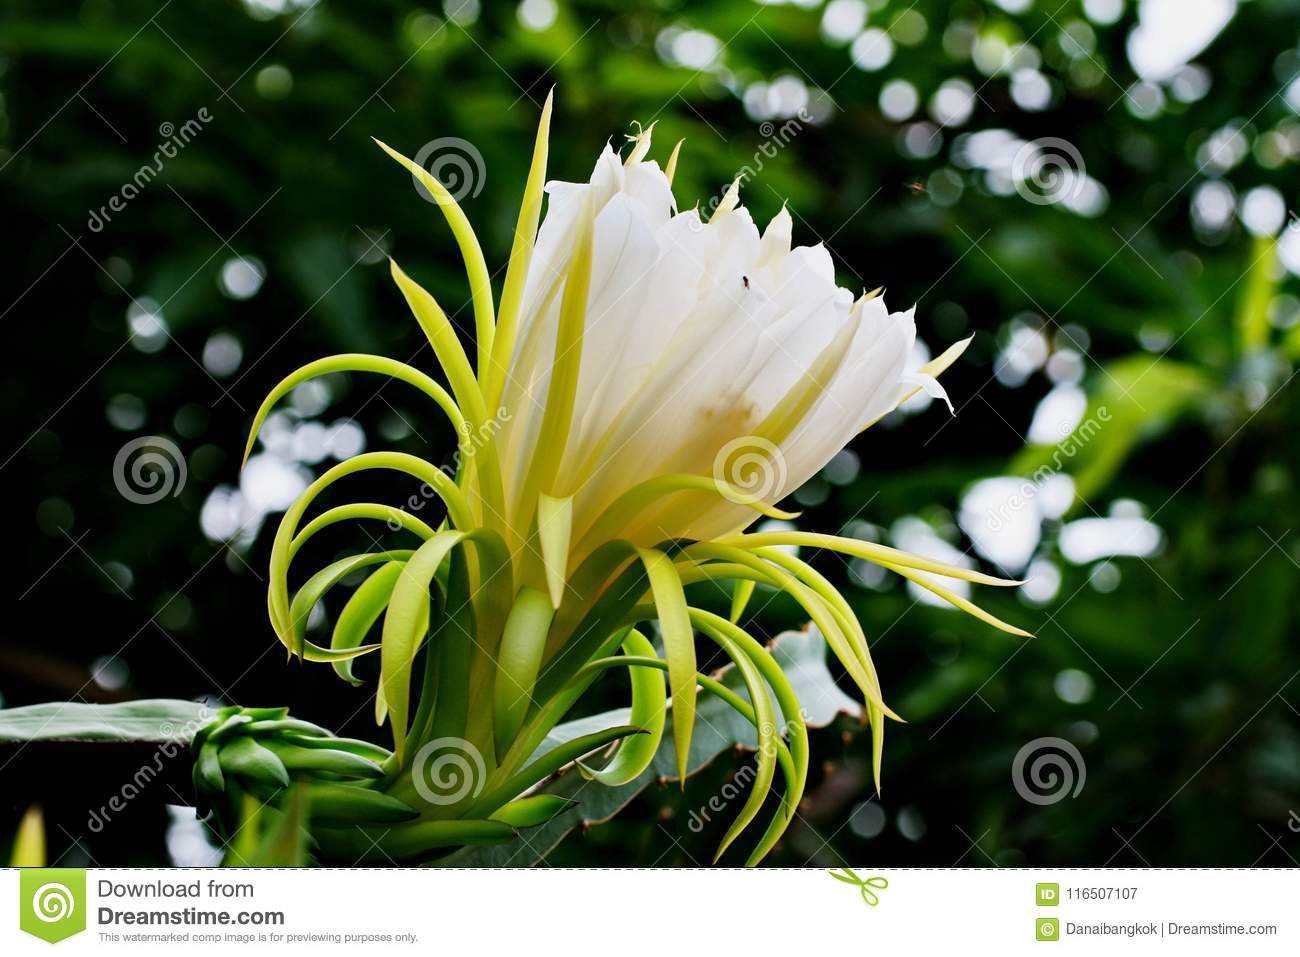 A White Dragon Fruit Flower Against The Back Ground With Bokeh Stock